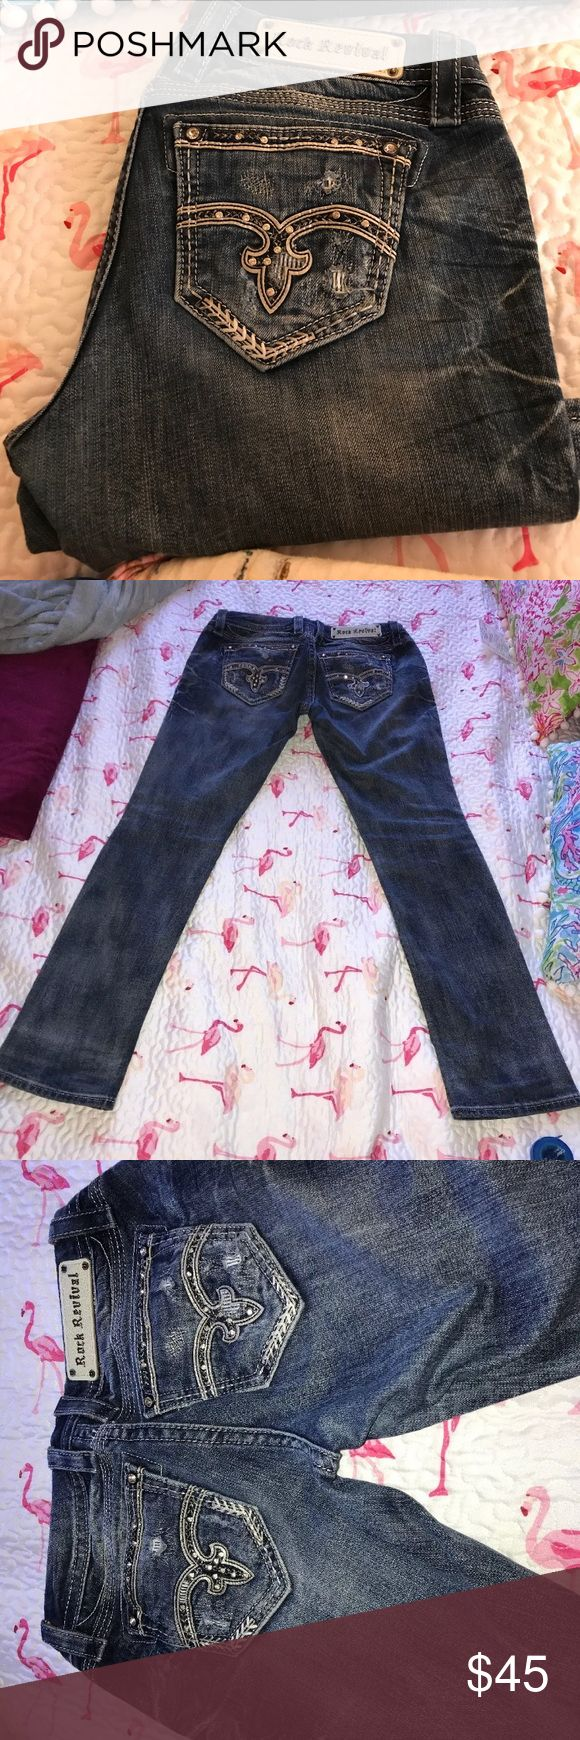 """Rock Revival 27 easy straight adaliz. GUC Great used condition.  Button closure  Zipper intact  Clean crotch  Easy straight  31"""" inseam  Distressed legs from factory. Your payment allows those disabled with MS to travel the world. Rock Revival Jeans Straight Leg"""